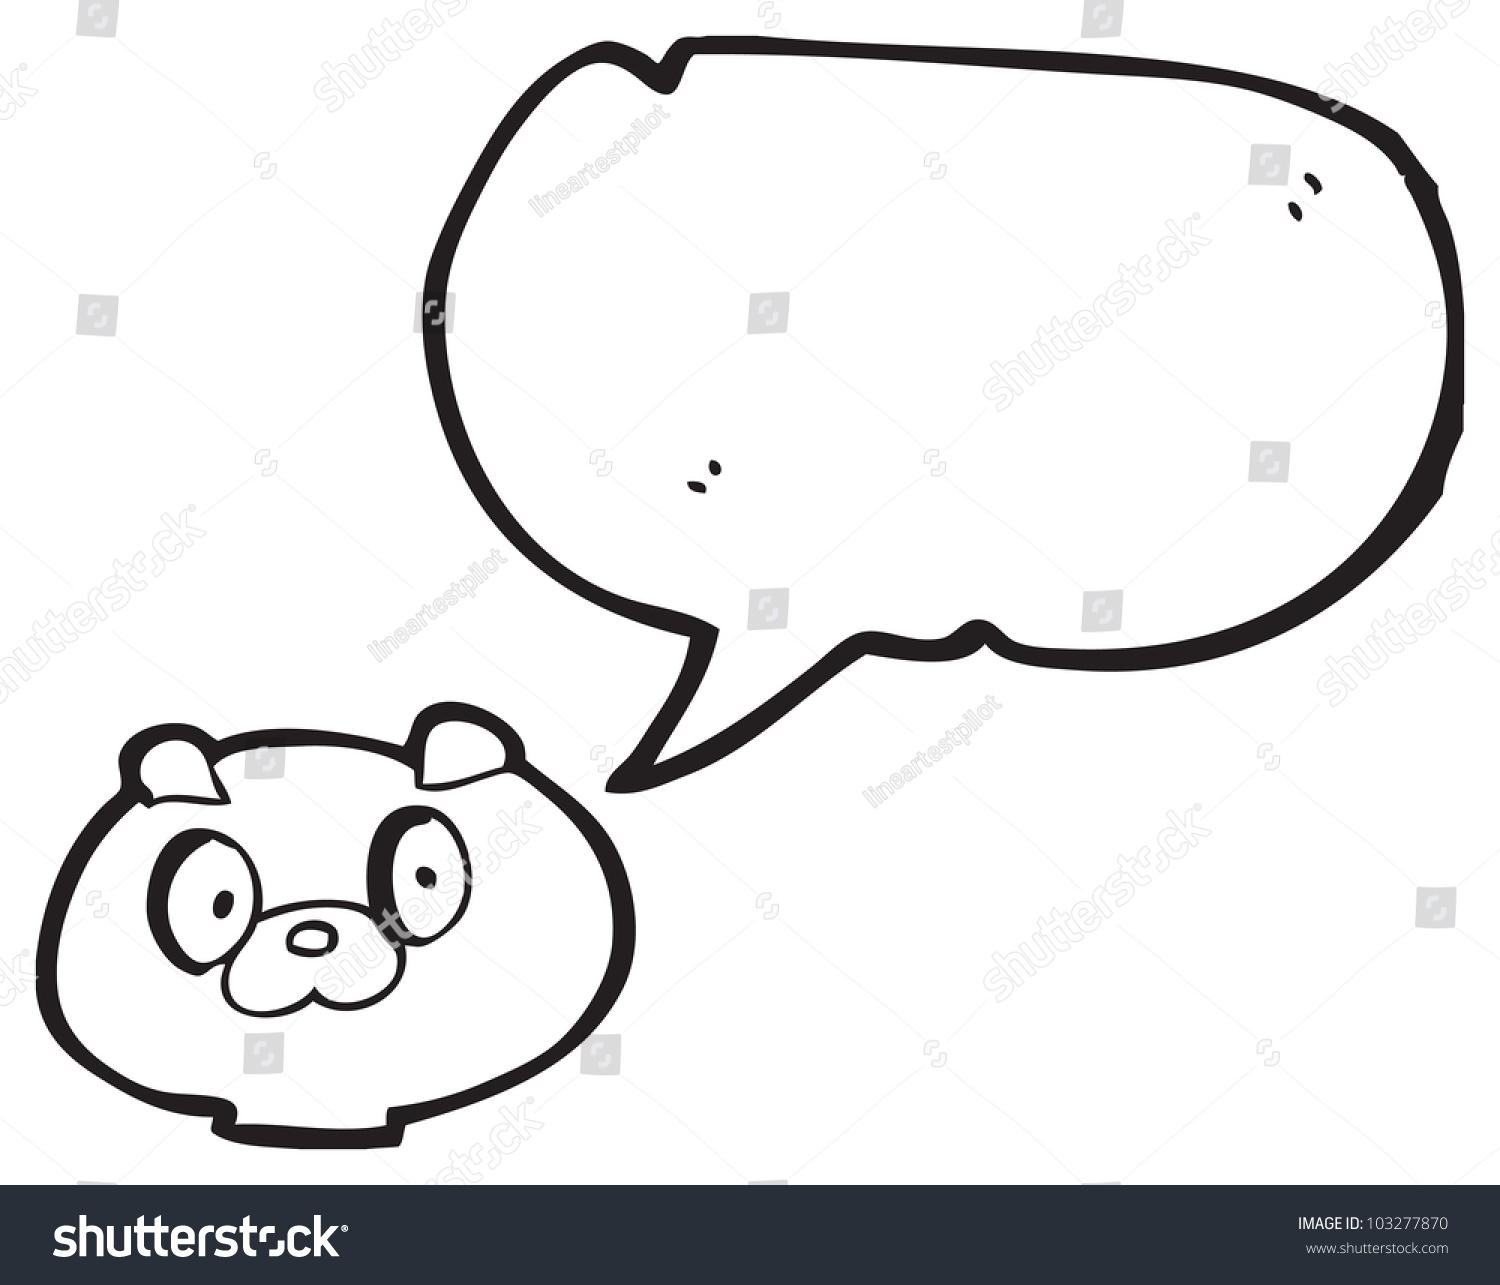 Cartoon dog stock photos images amp pictures shutterstock - Cartoon Puppy Dog Face With Speech Bubble